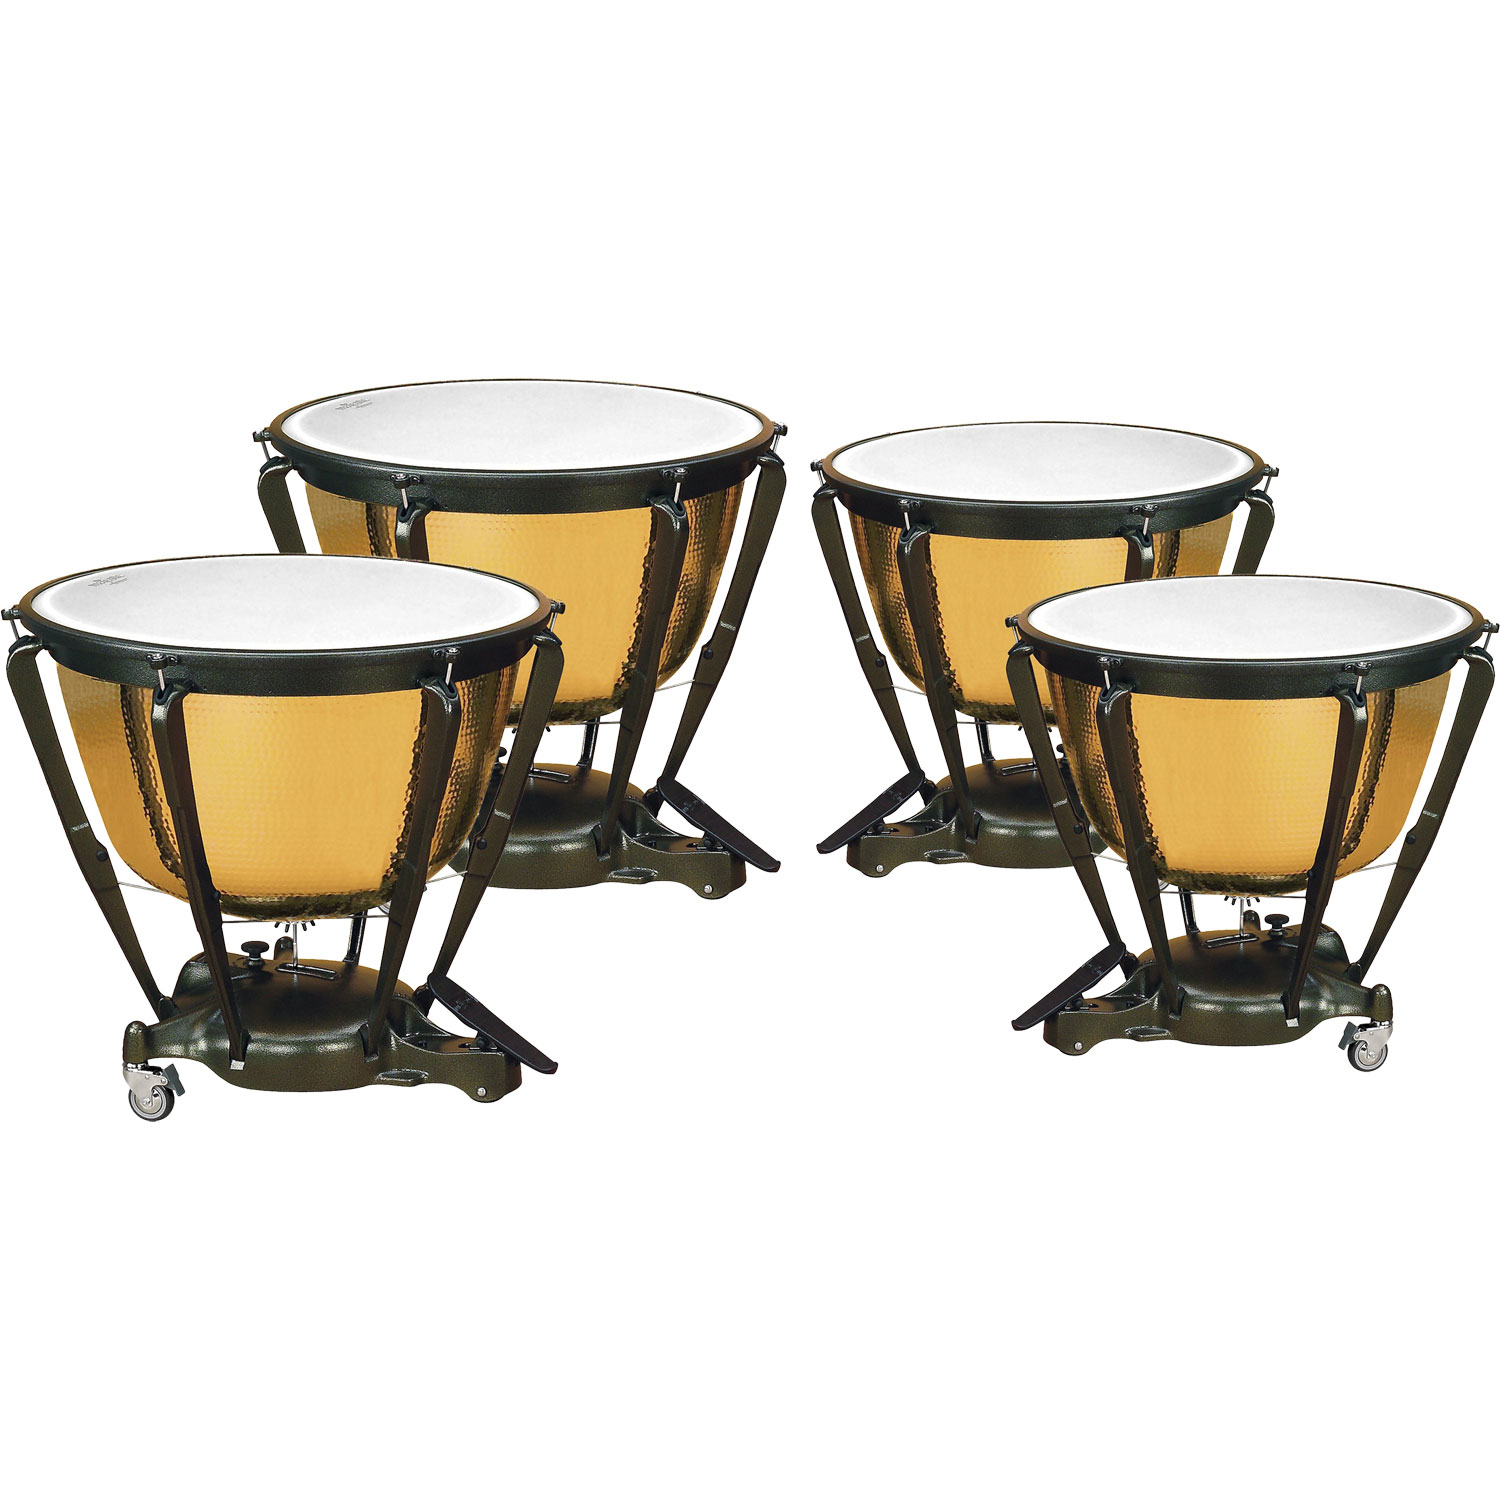 "Majestic 23/26/29/32"" Symphonic Timpani Set with Precision Hammered Copper Bowls"